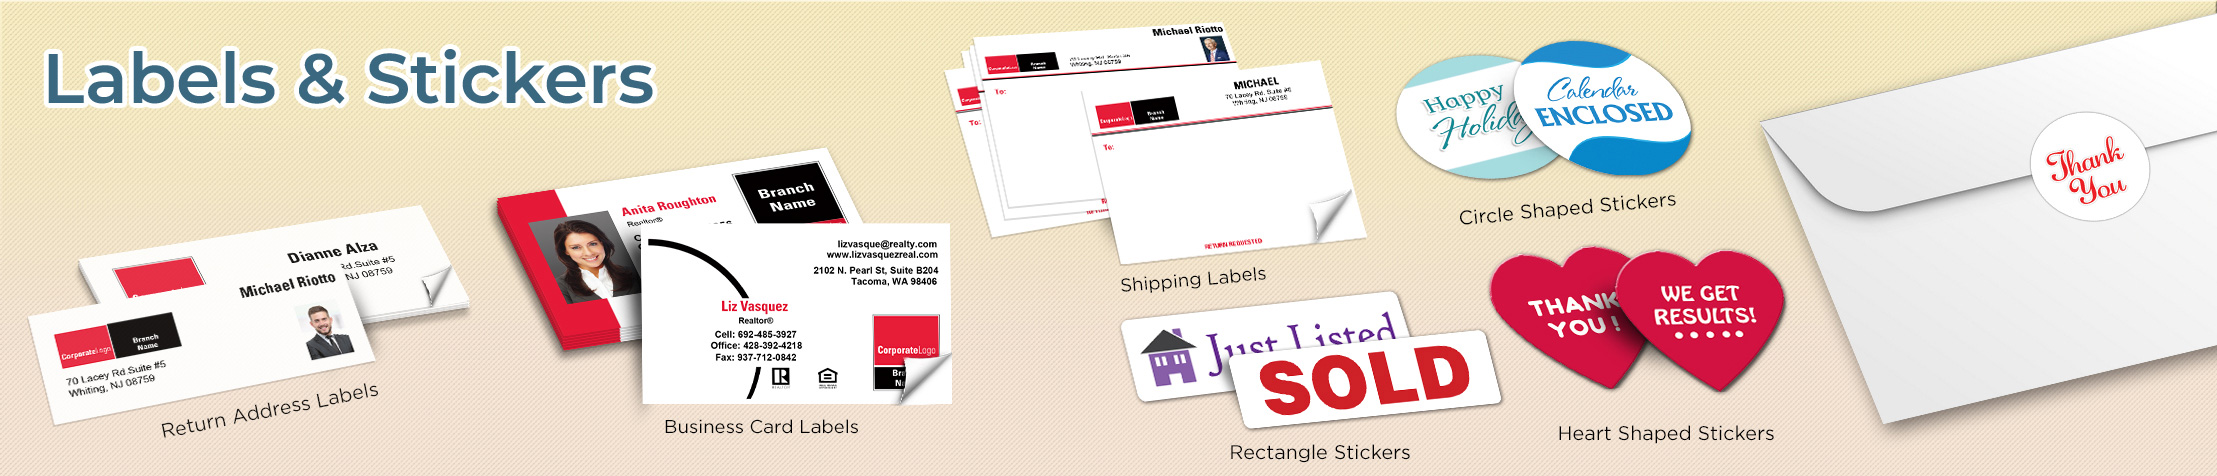 Real Living Real Estate Labels and Stickers - Real Living Real Estate business card labels, return address labels, shipping labels, and assorted stickers | BestPrintBuy.com